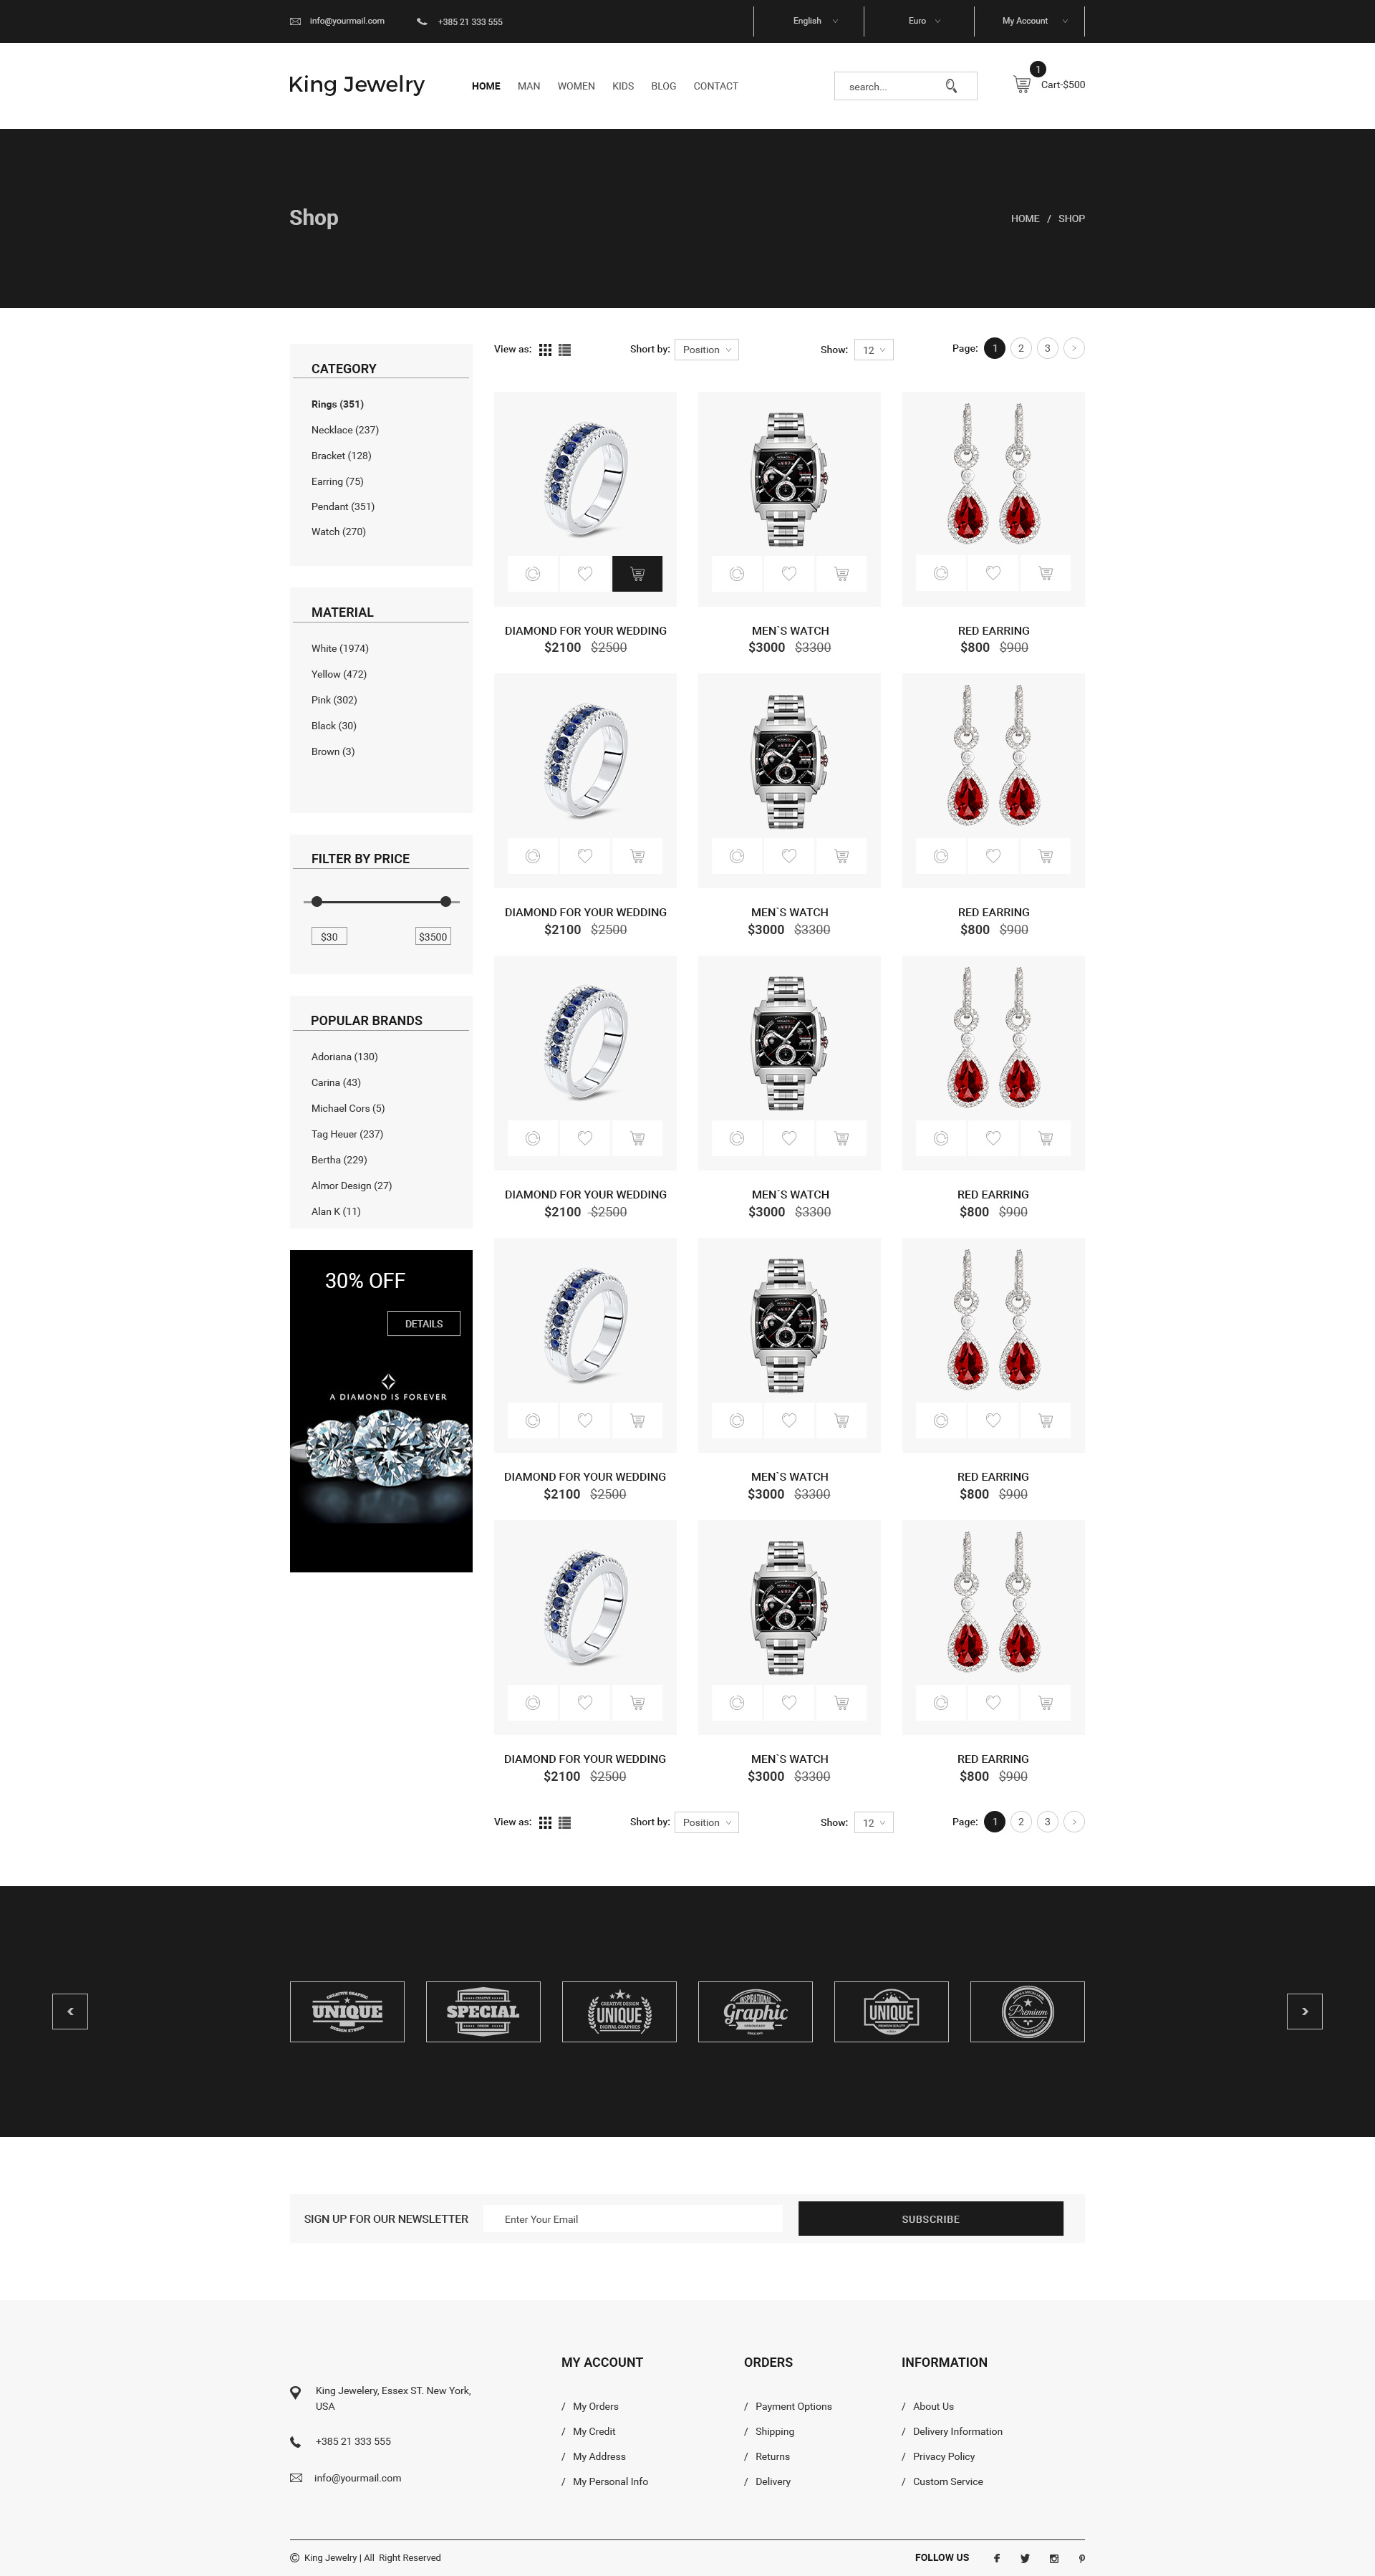 01 Screenshots King Jewelry Jpg 02 Home 03 Product Grid